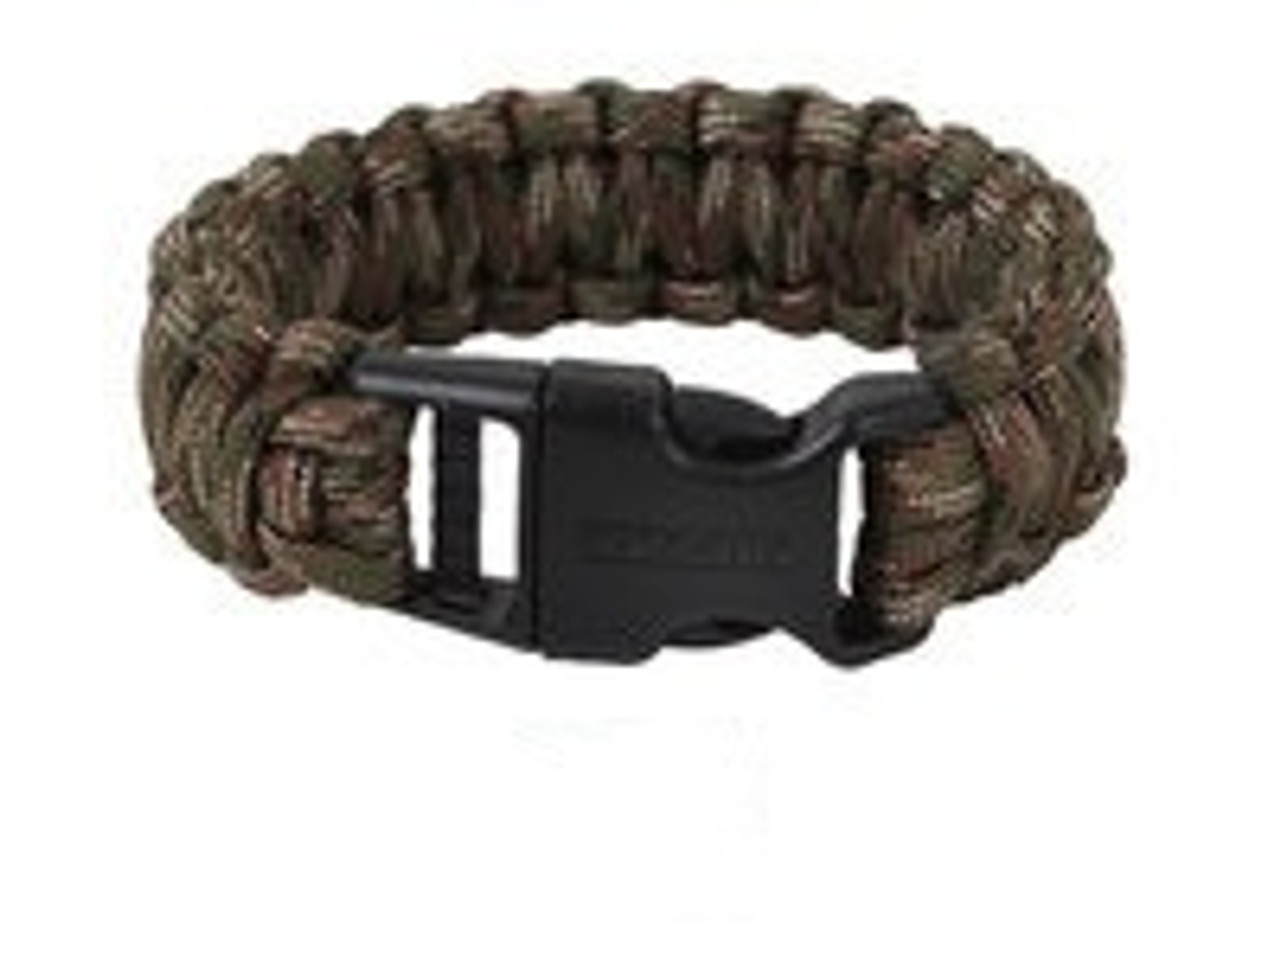 Paracord/Cords & Accessories